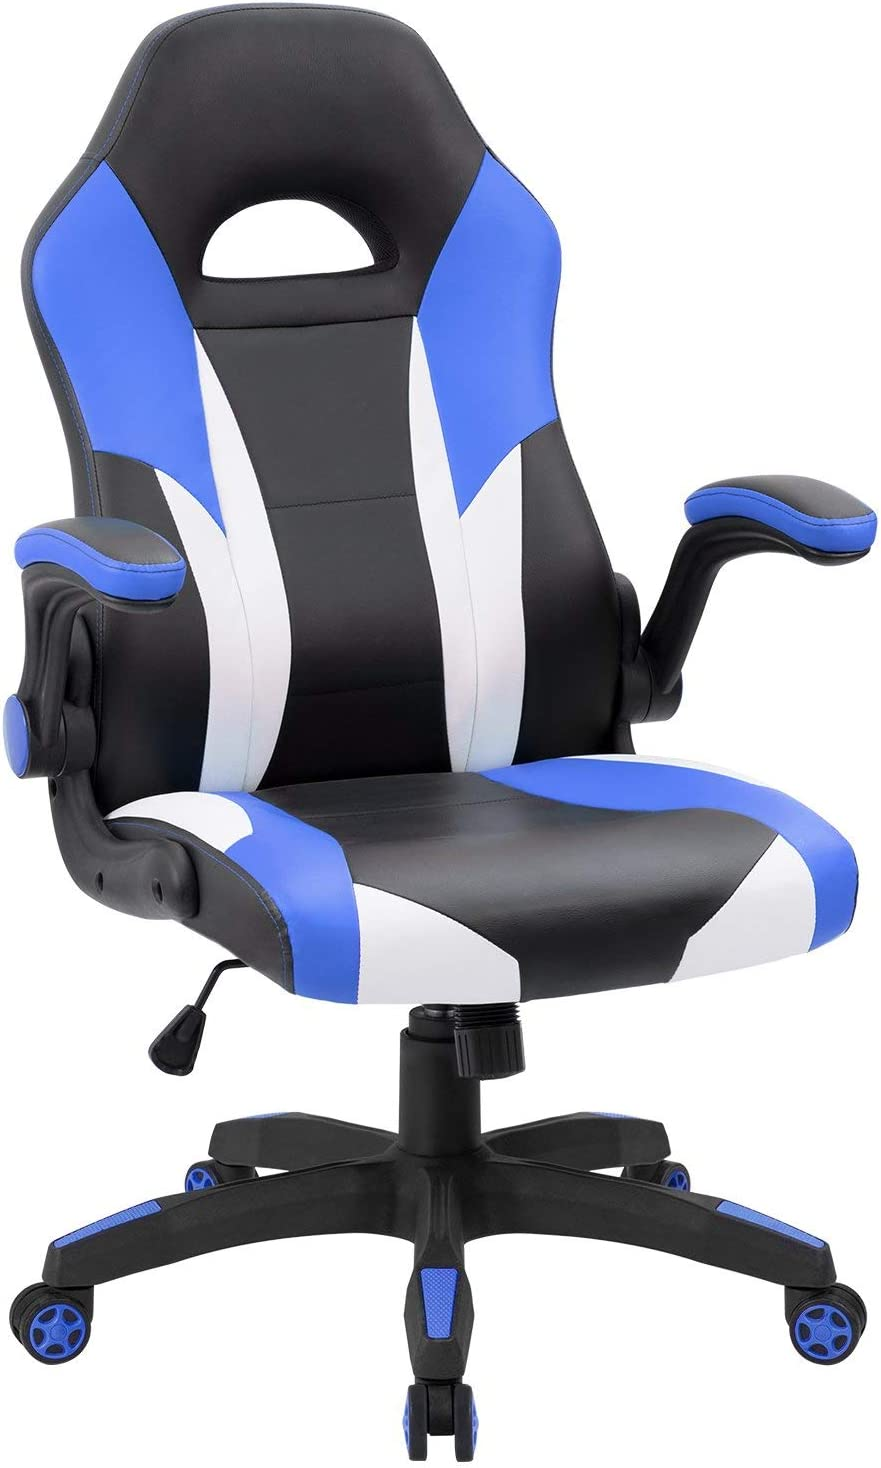 JUMMICO Gaming Max 46% OFF Chair Max 87% OFF Ergonomic Leather Computer Racing Hig